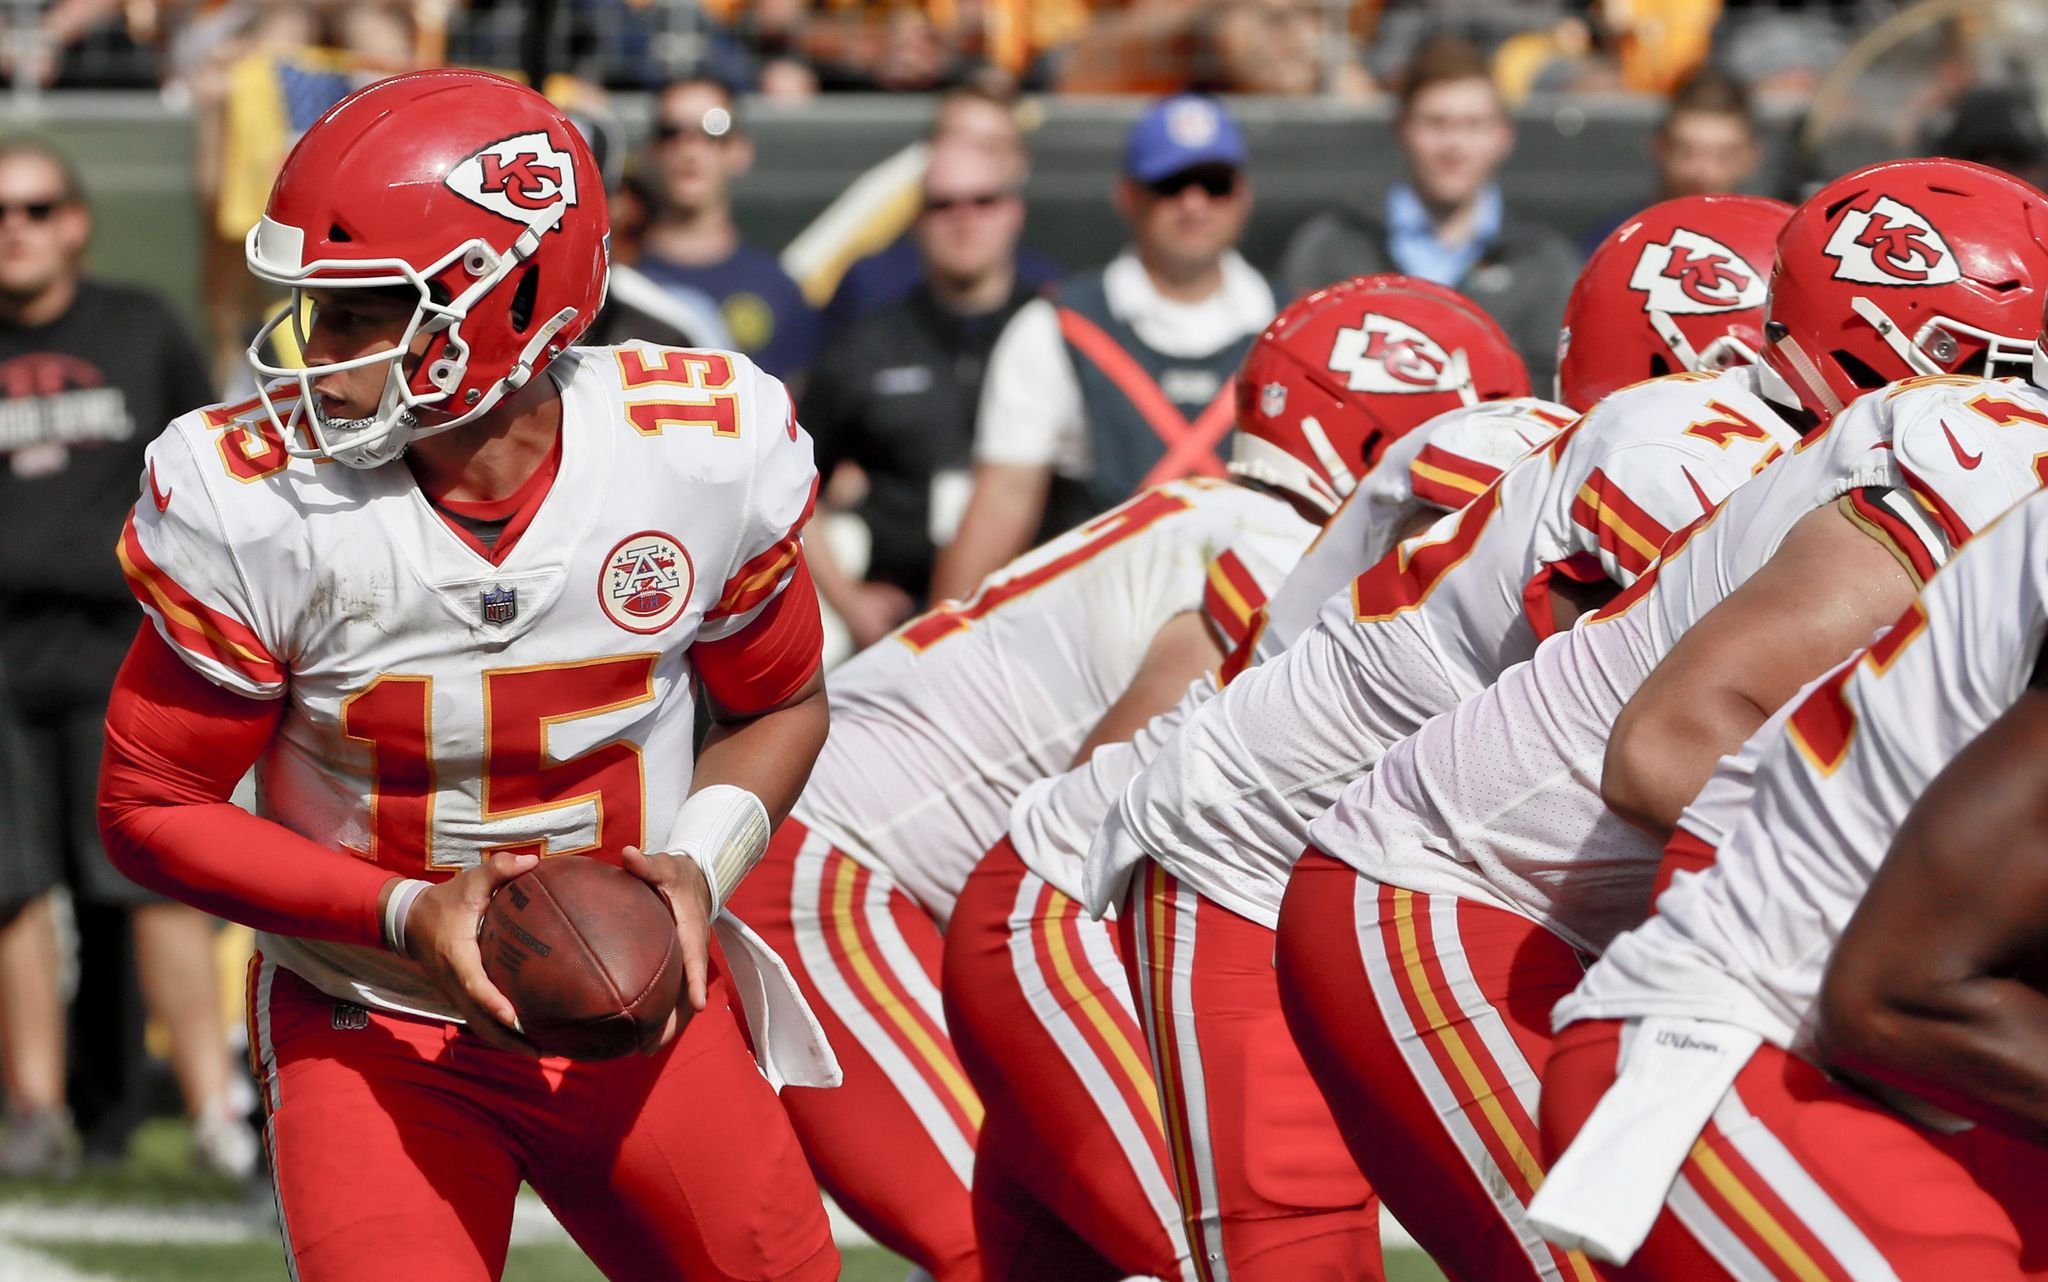 Chiefs_blocking_for_patrick_football_77416_s2048x1282